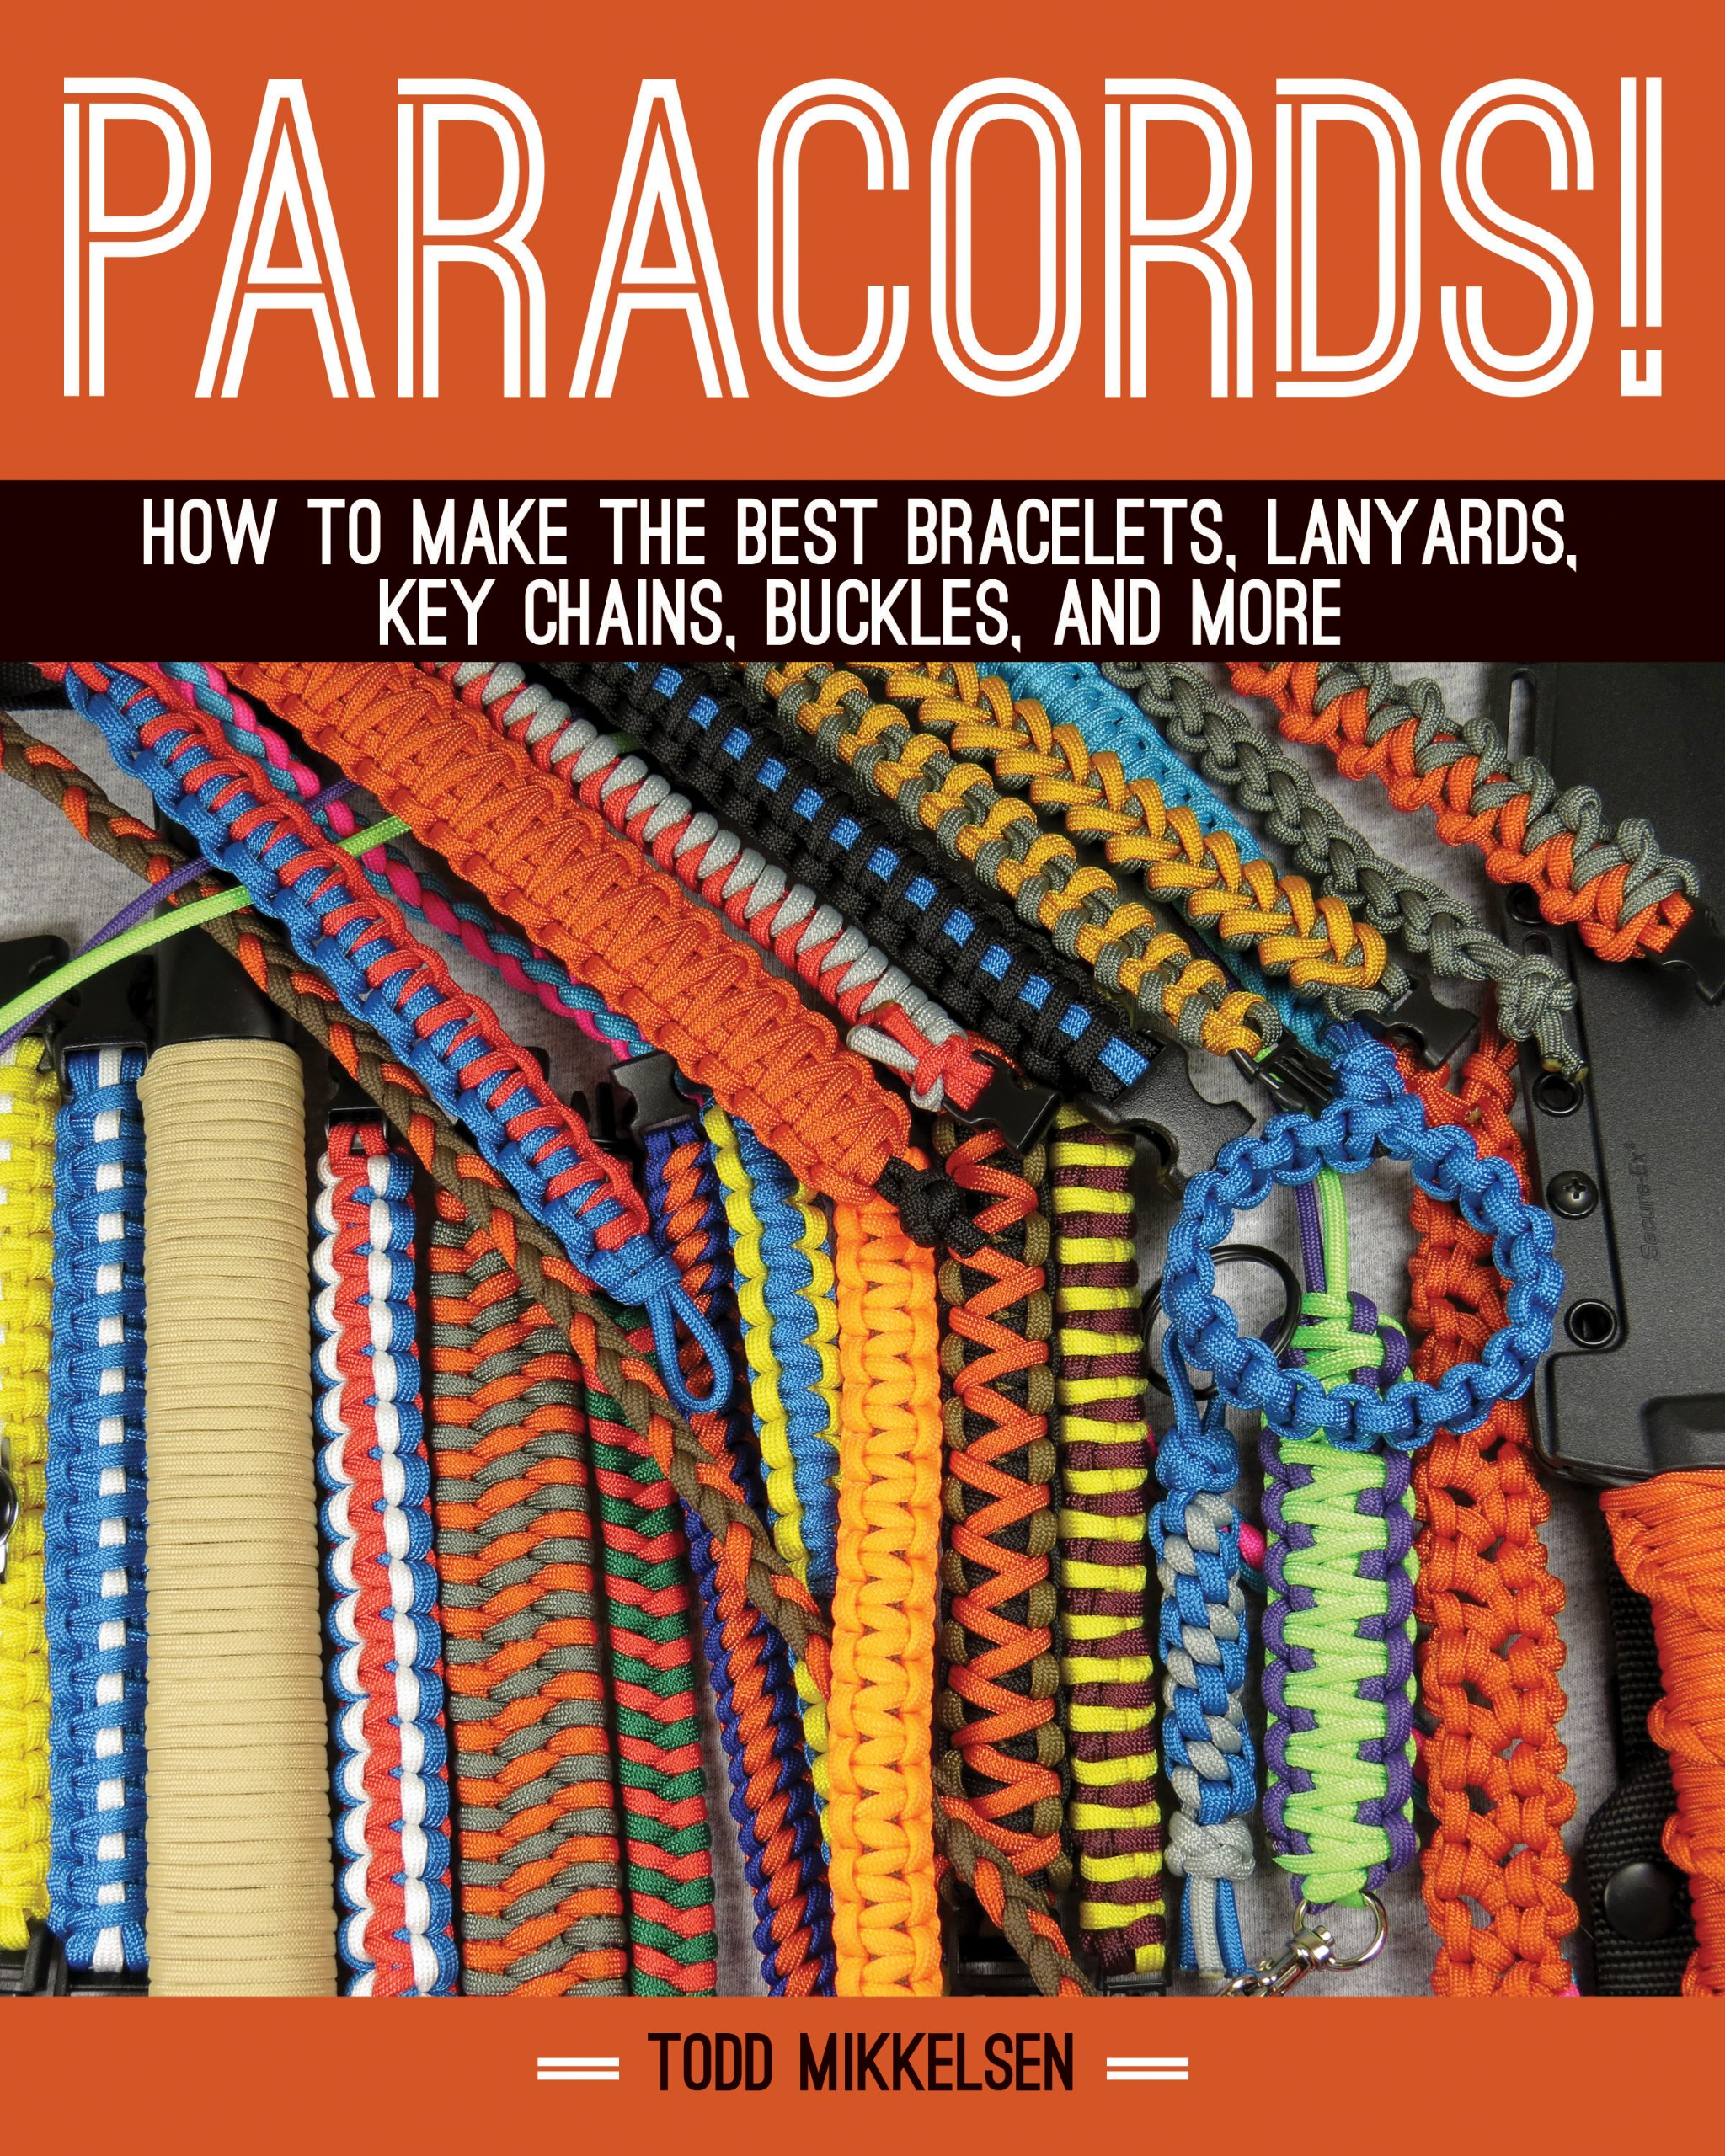 Paracord Bracelets Lanyards Chains Buckles